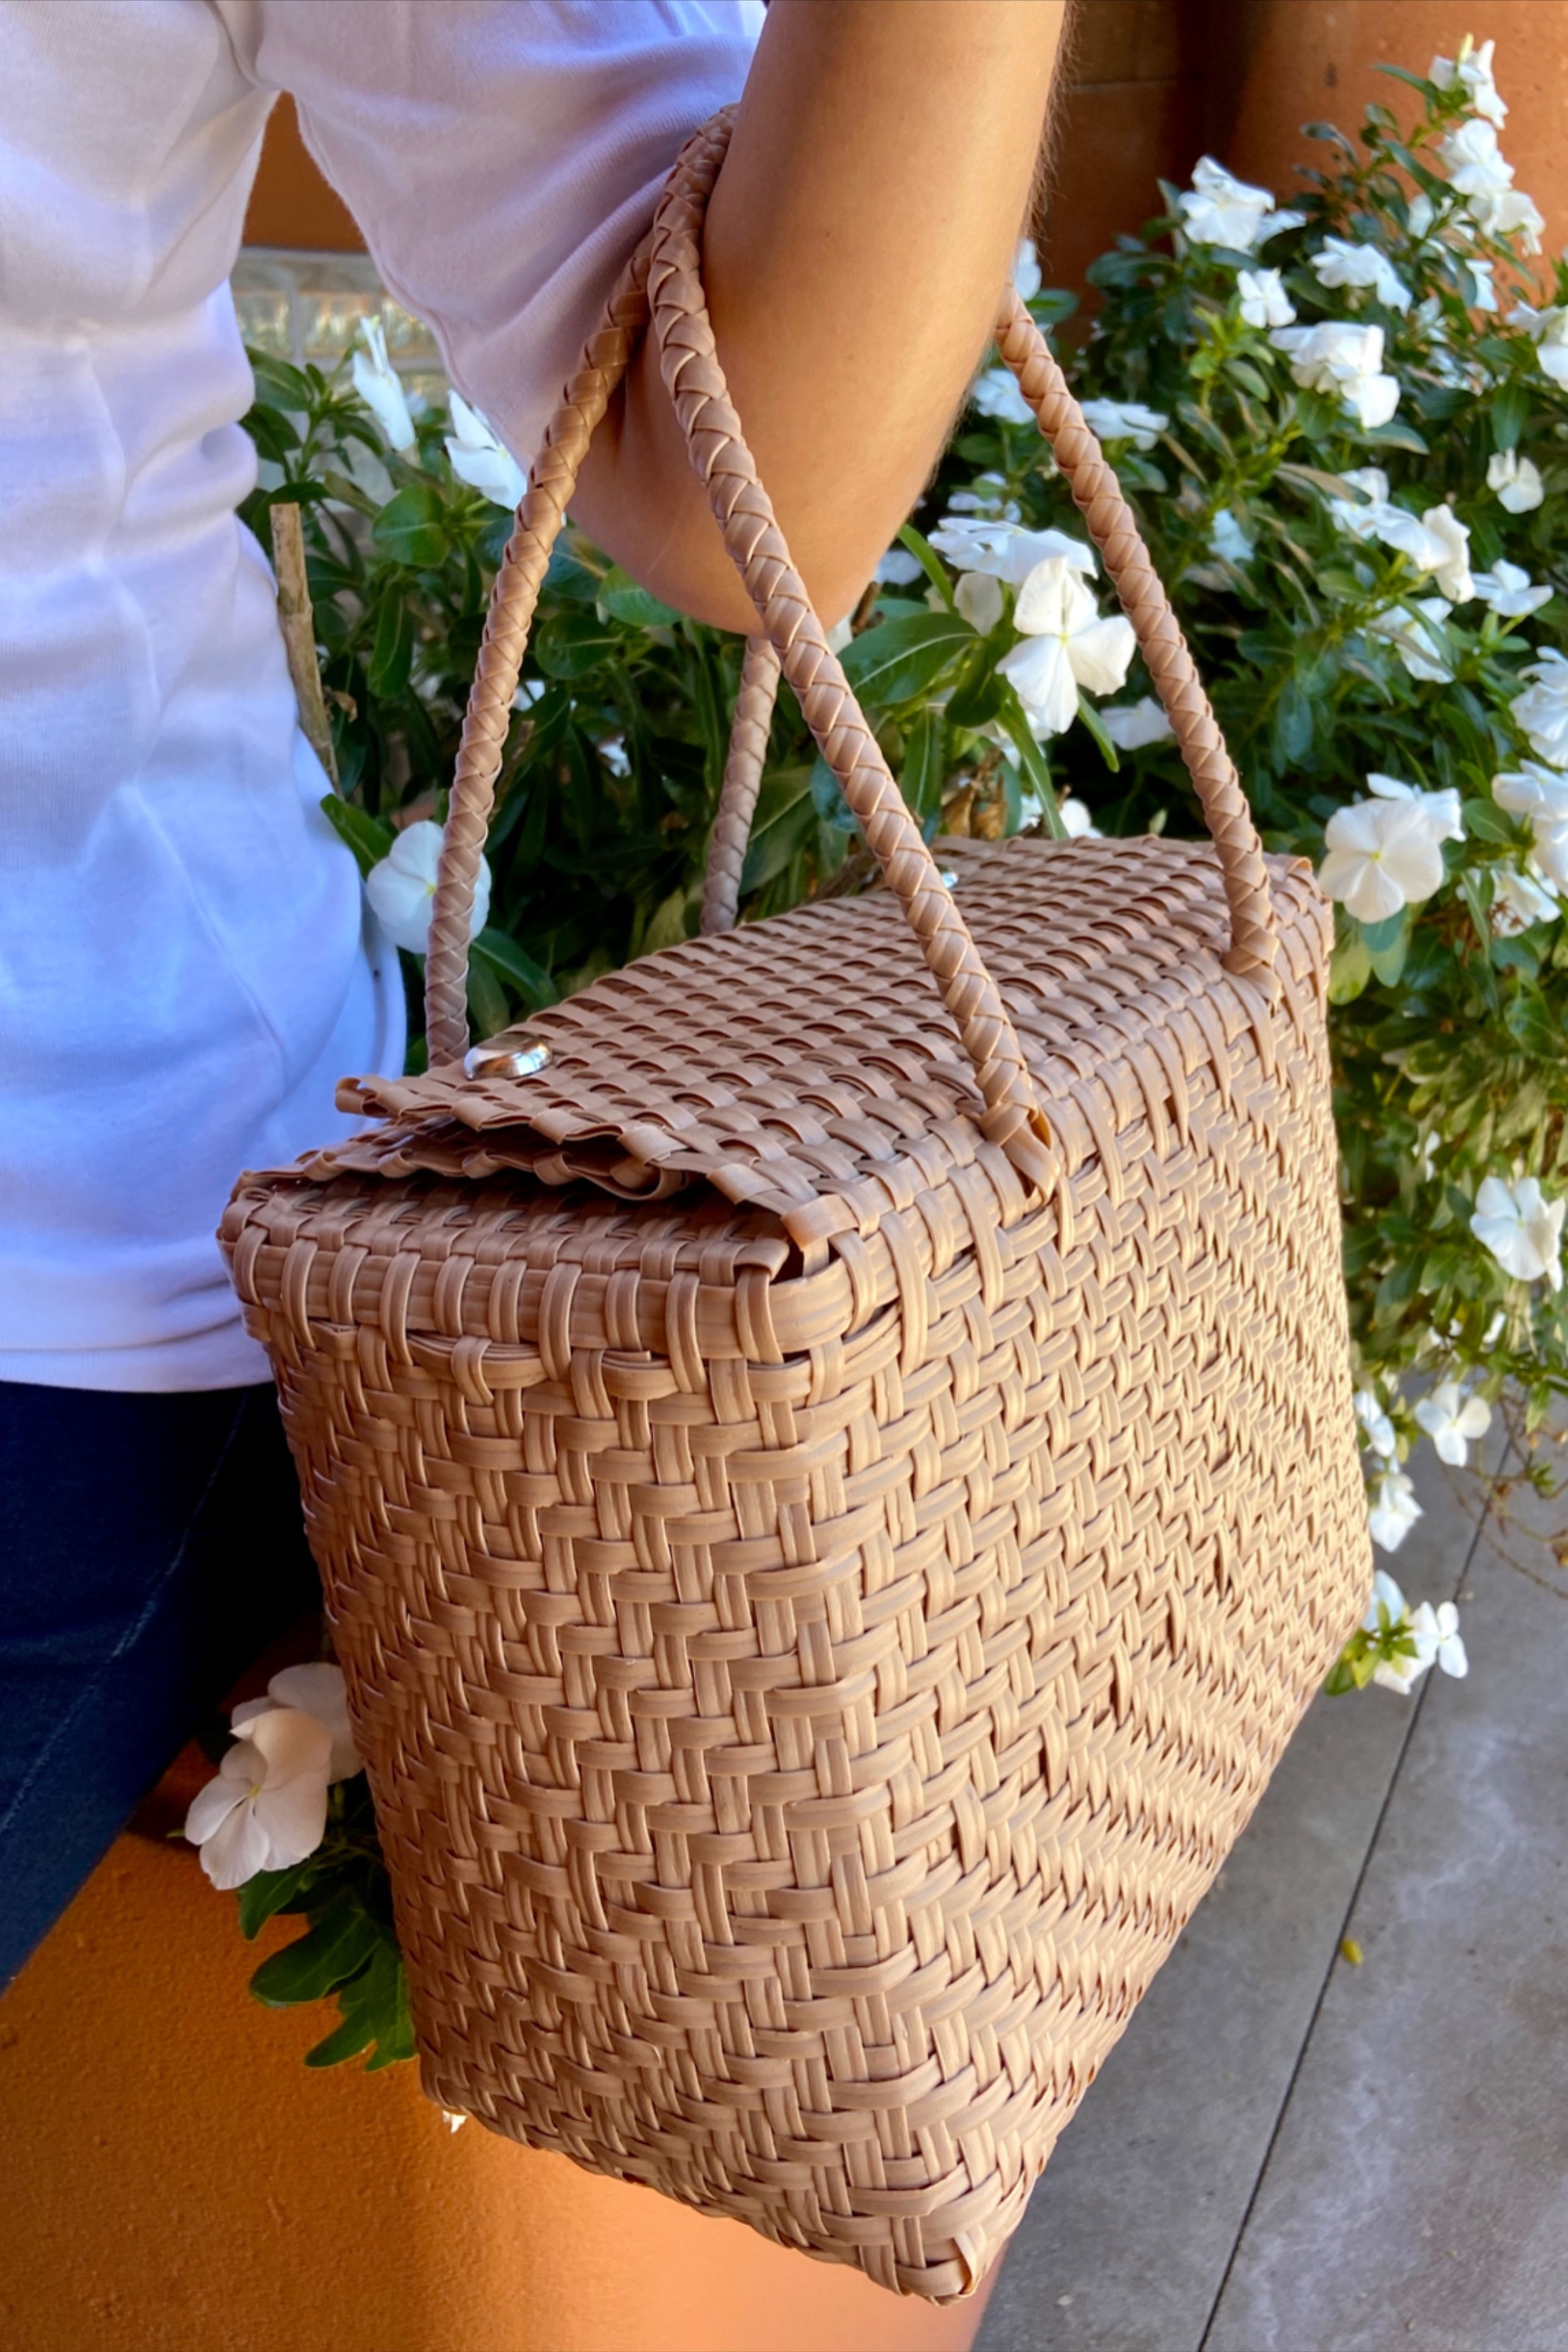 100% handmade by Guatemalan artisans - this is the cutest bag perfect for literally any occassion. It is washable, super flexible, light, and stylish! #sustainablefashion #ecofriendly #casualhandbags #cutepurse #stylishbag #etsy #oneofakind